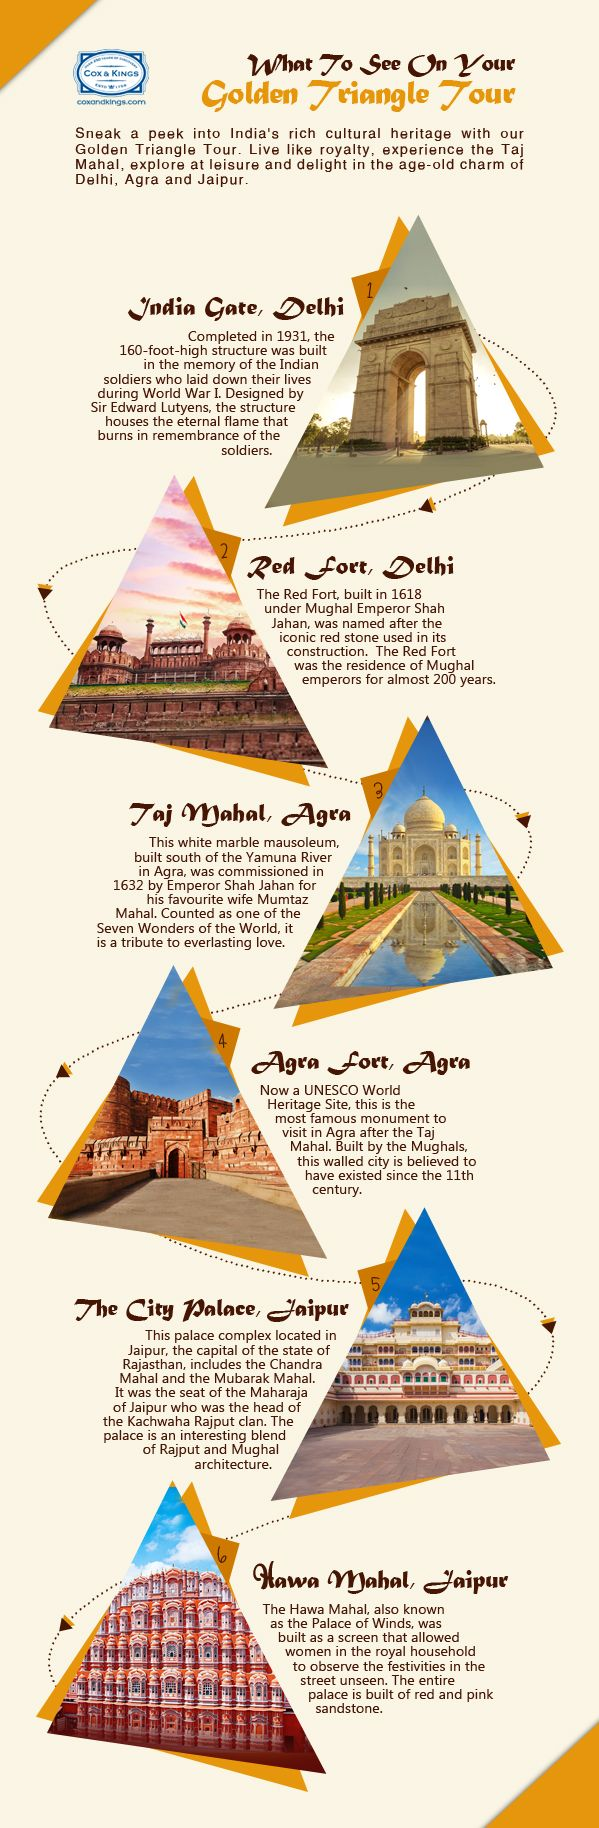 Don't miss your chance to visit a regal India with our Golden Triangle Tour.